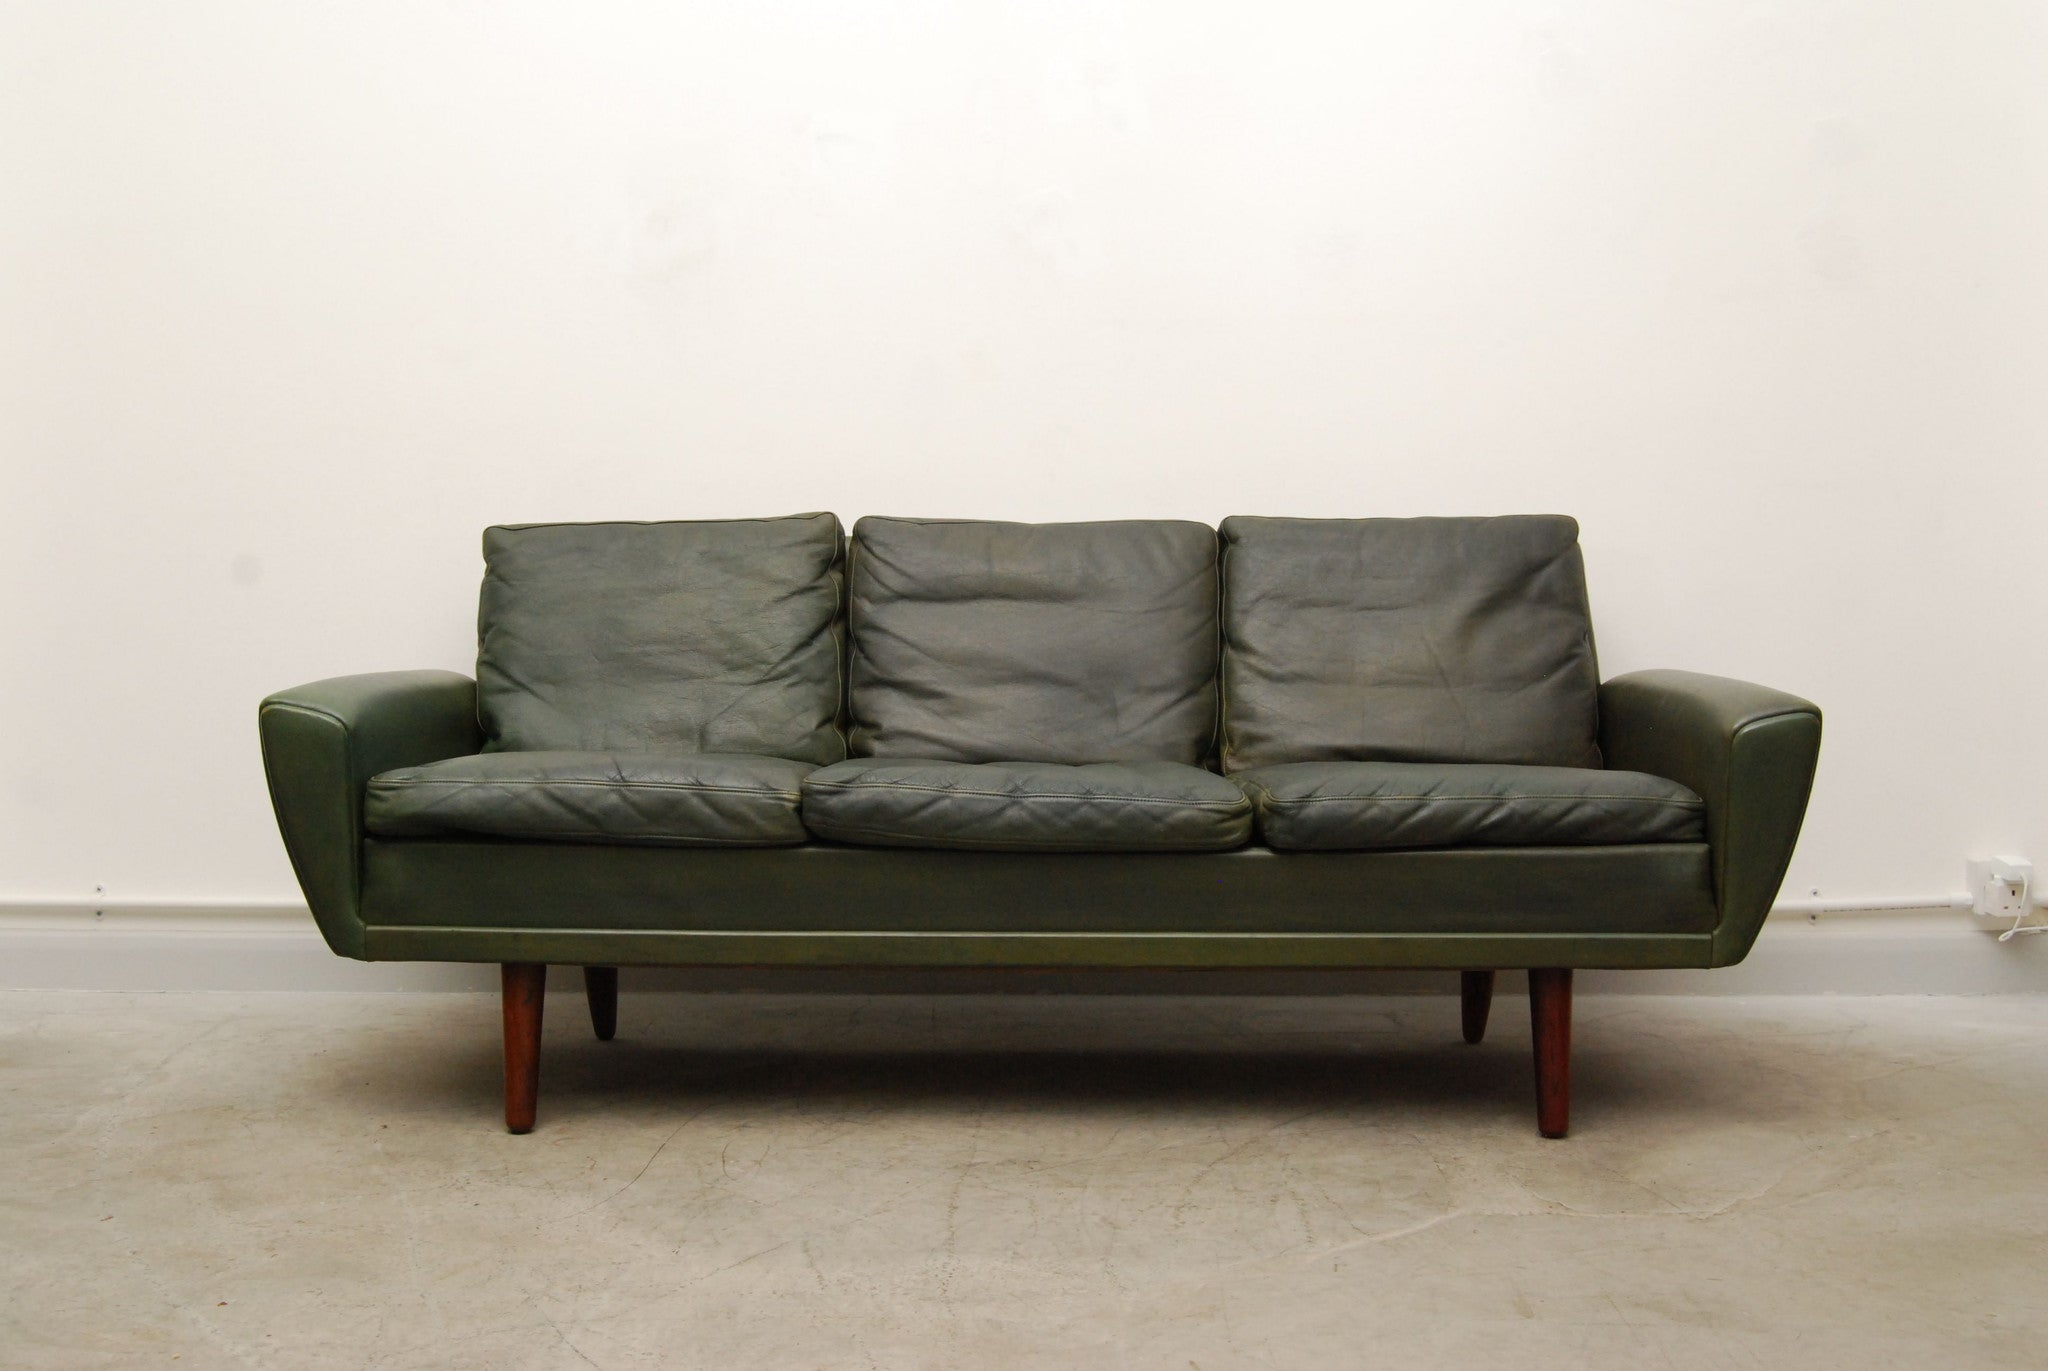 Chase & Sorensen Three seat sofa by Vejen